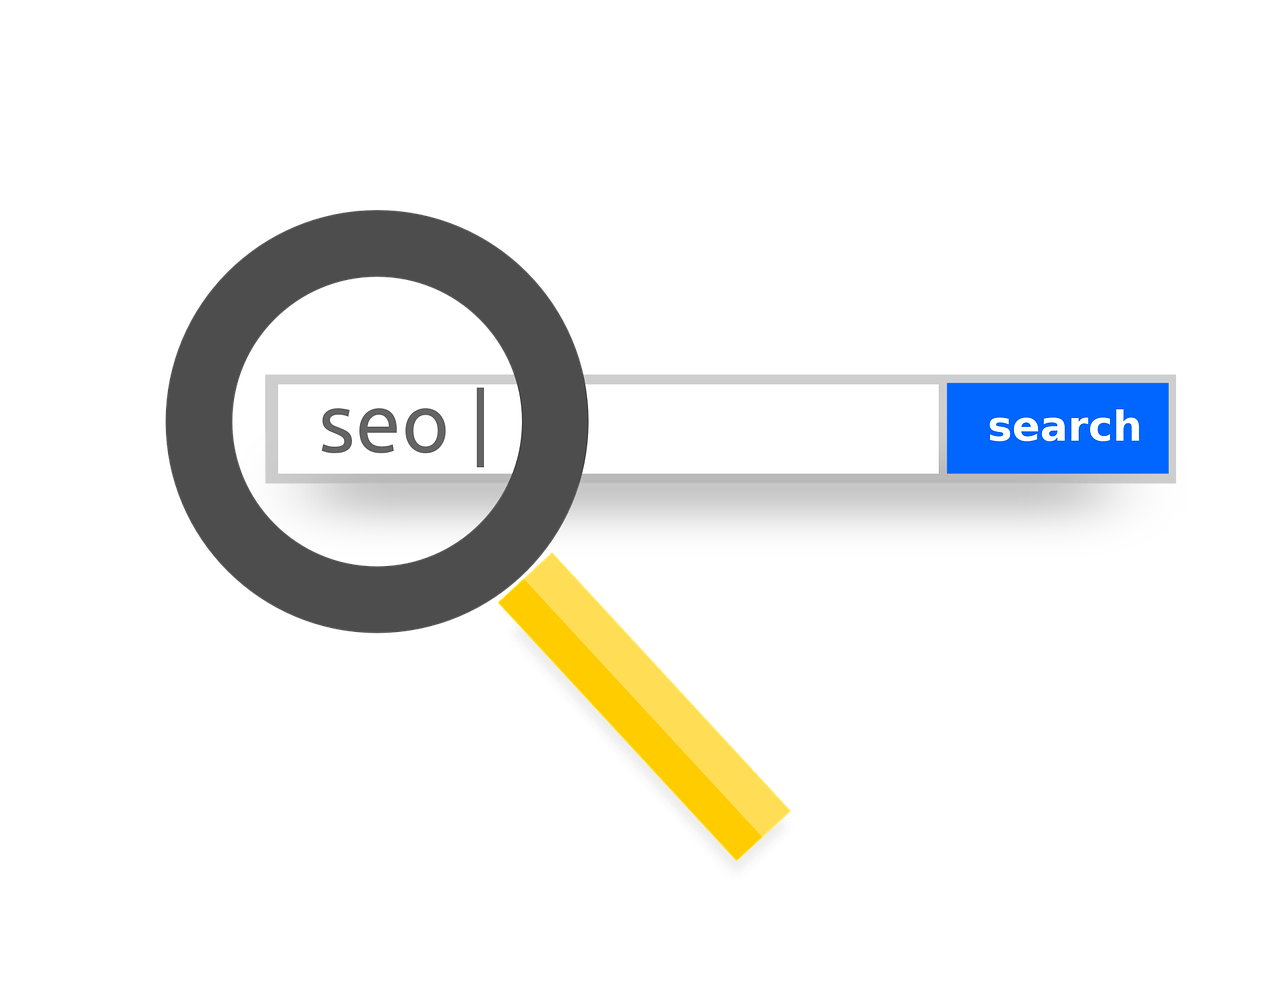 SEO (Search engine optimization) How to do it